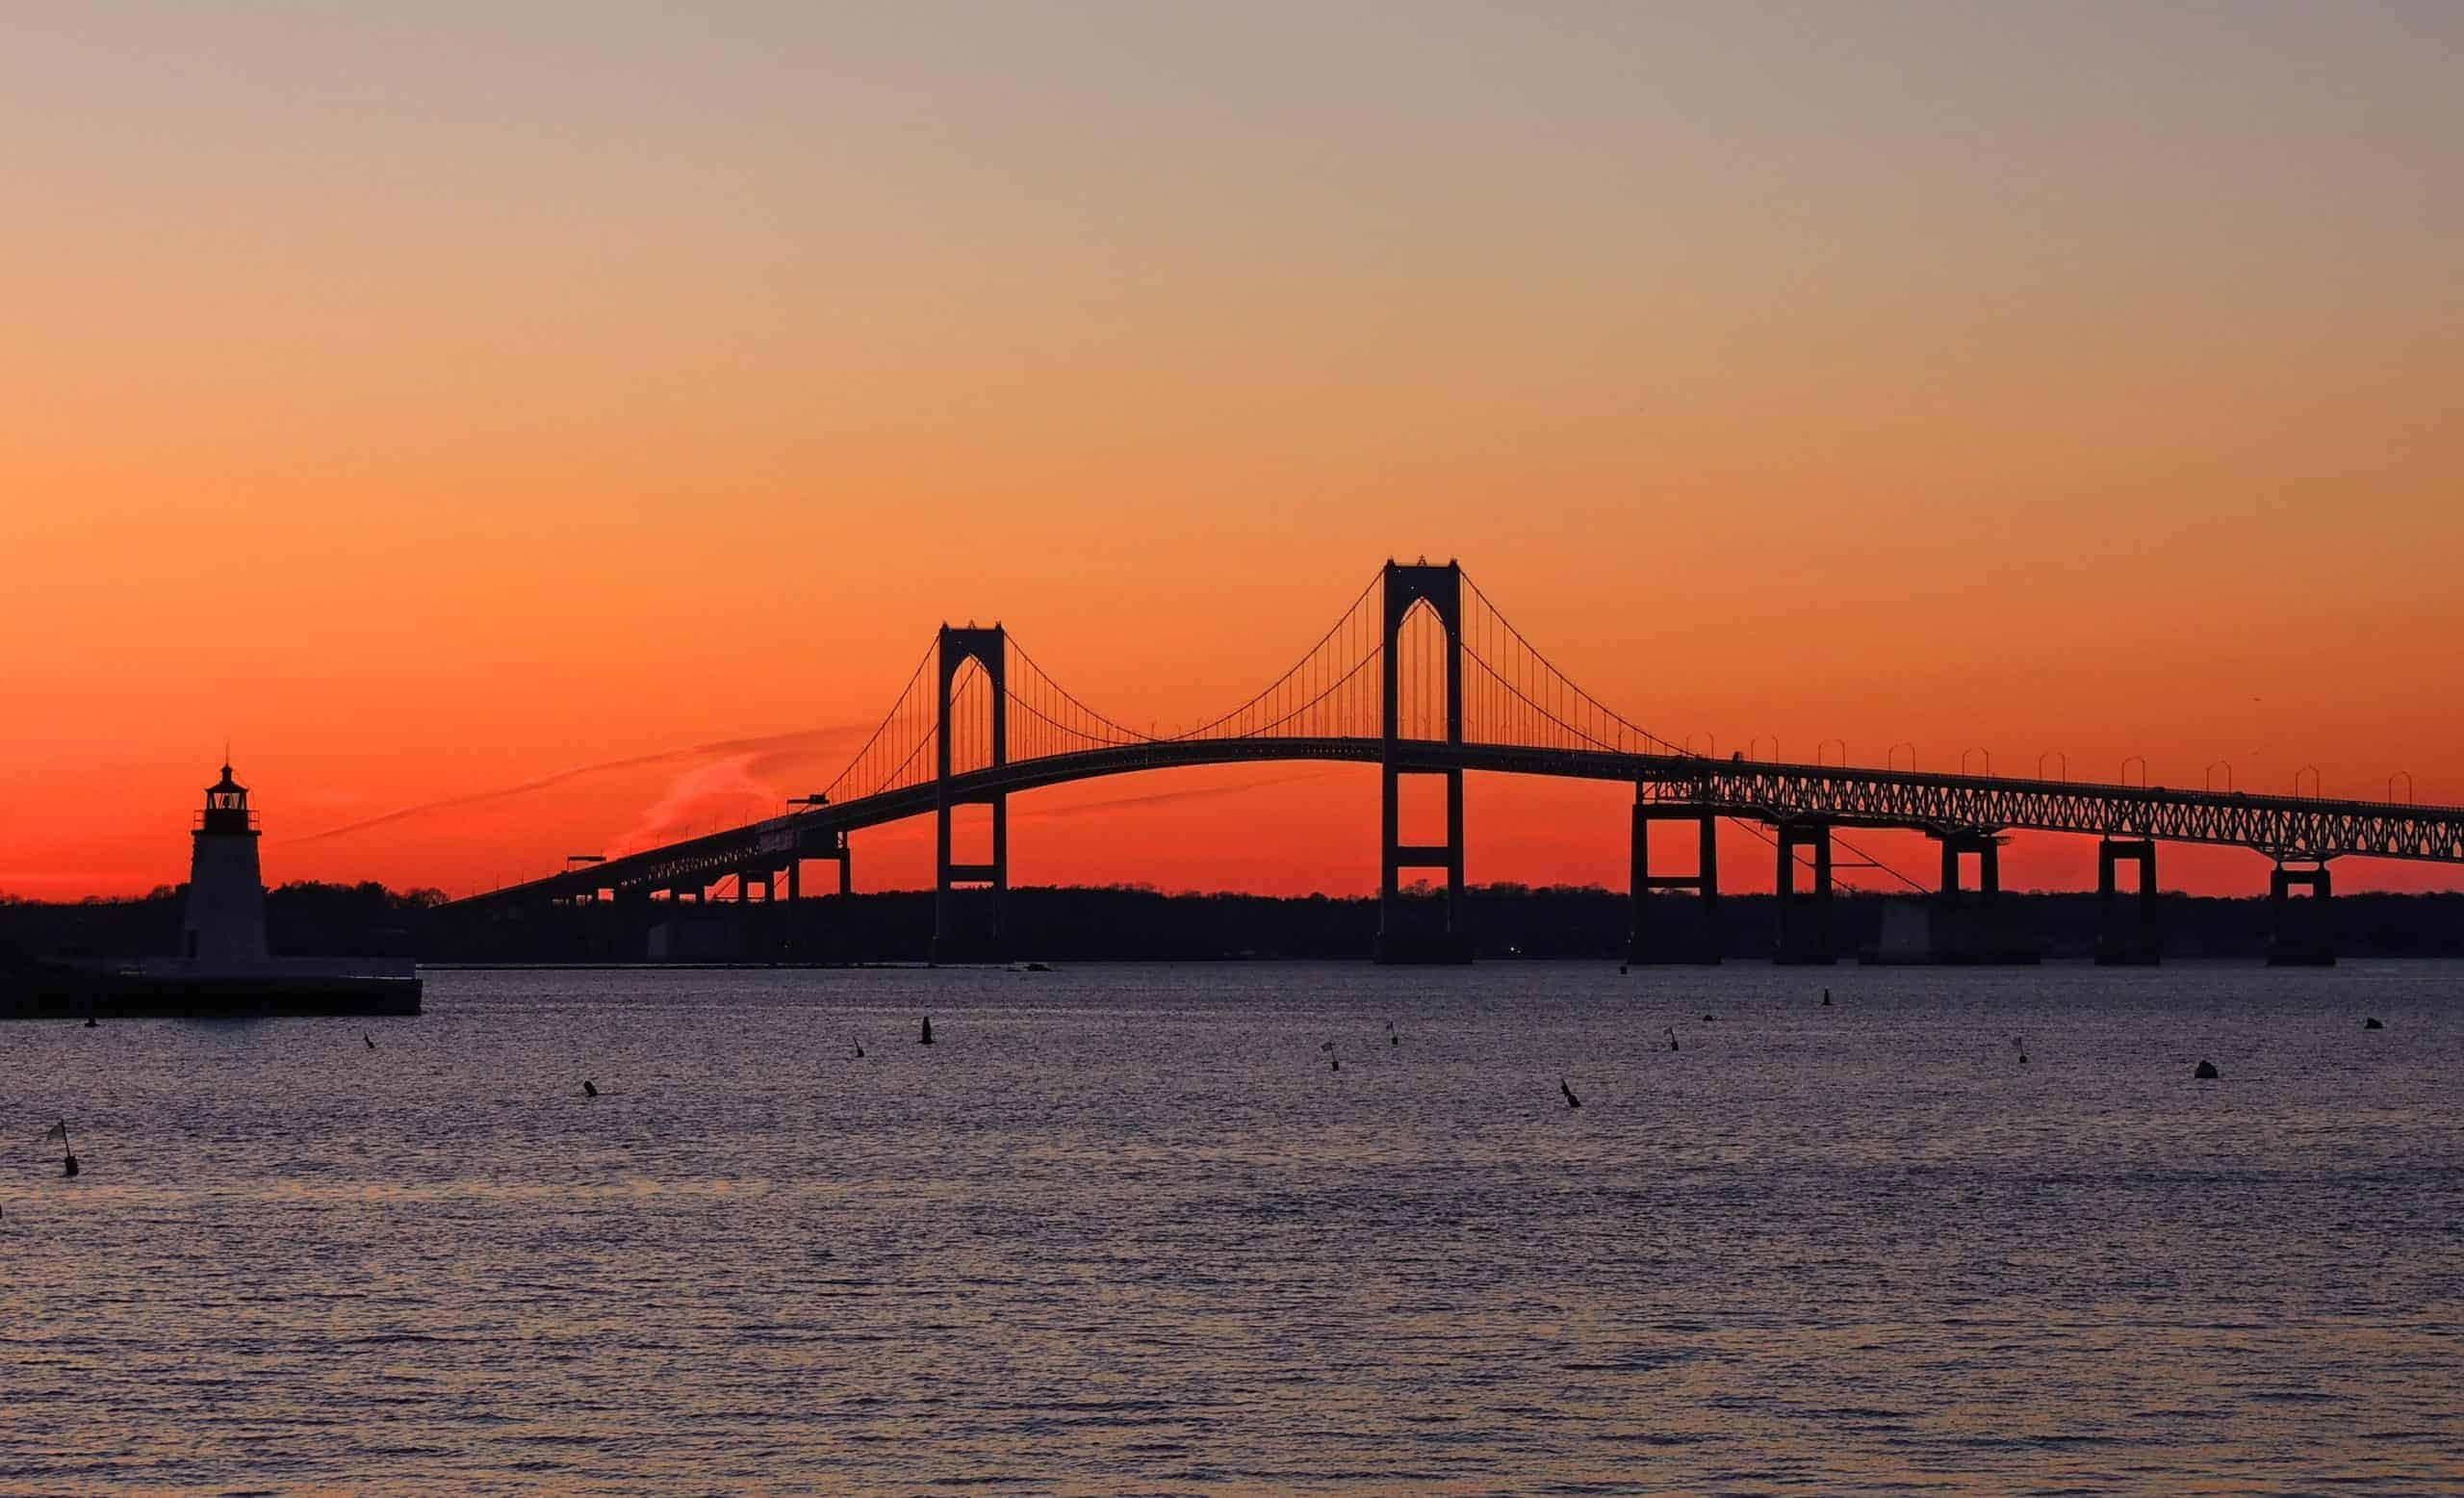 The bridge connecting Newport to the rest of Rhode Island at sunset